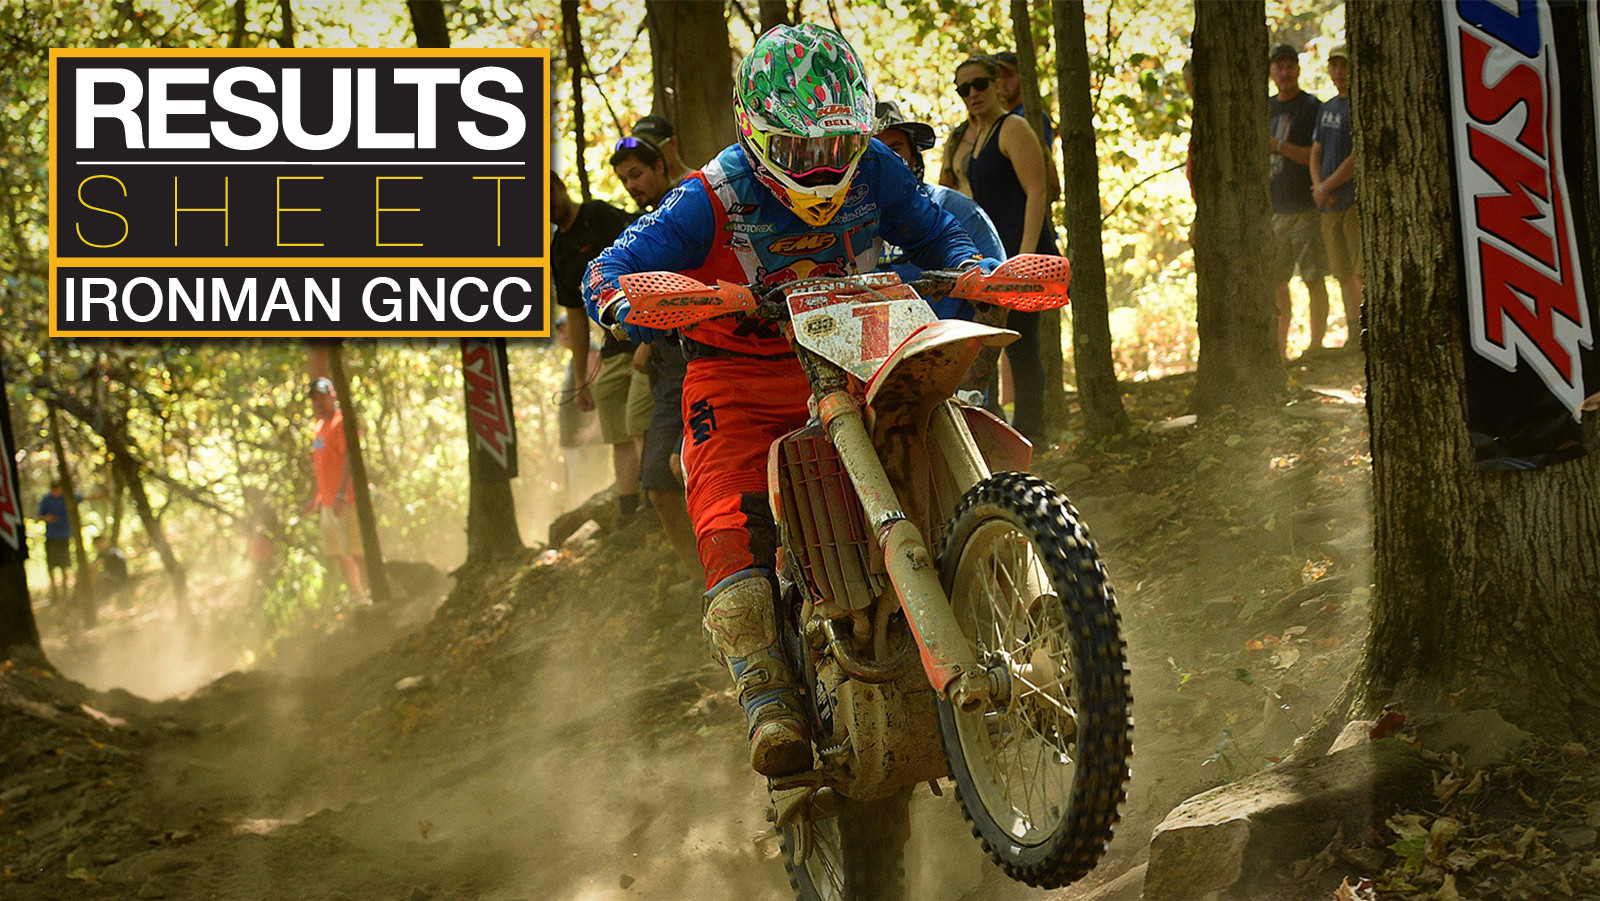 Results Sheet: Ironman GNCC